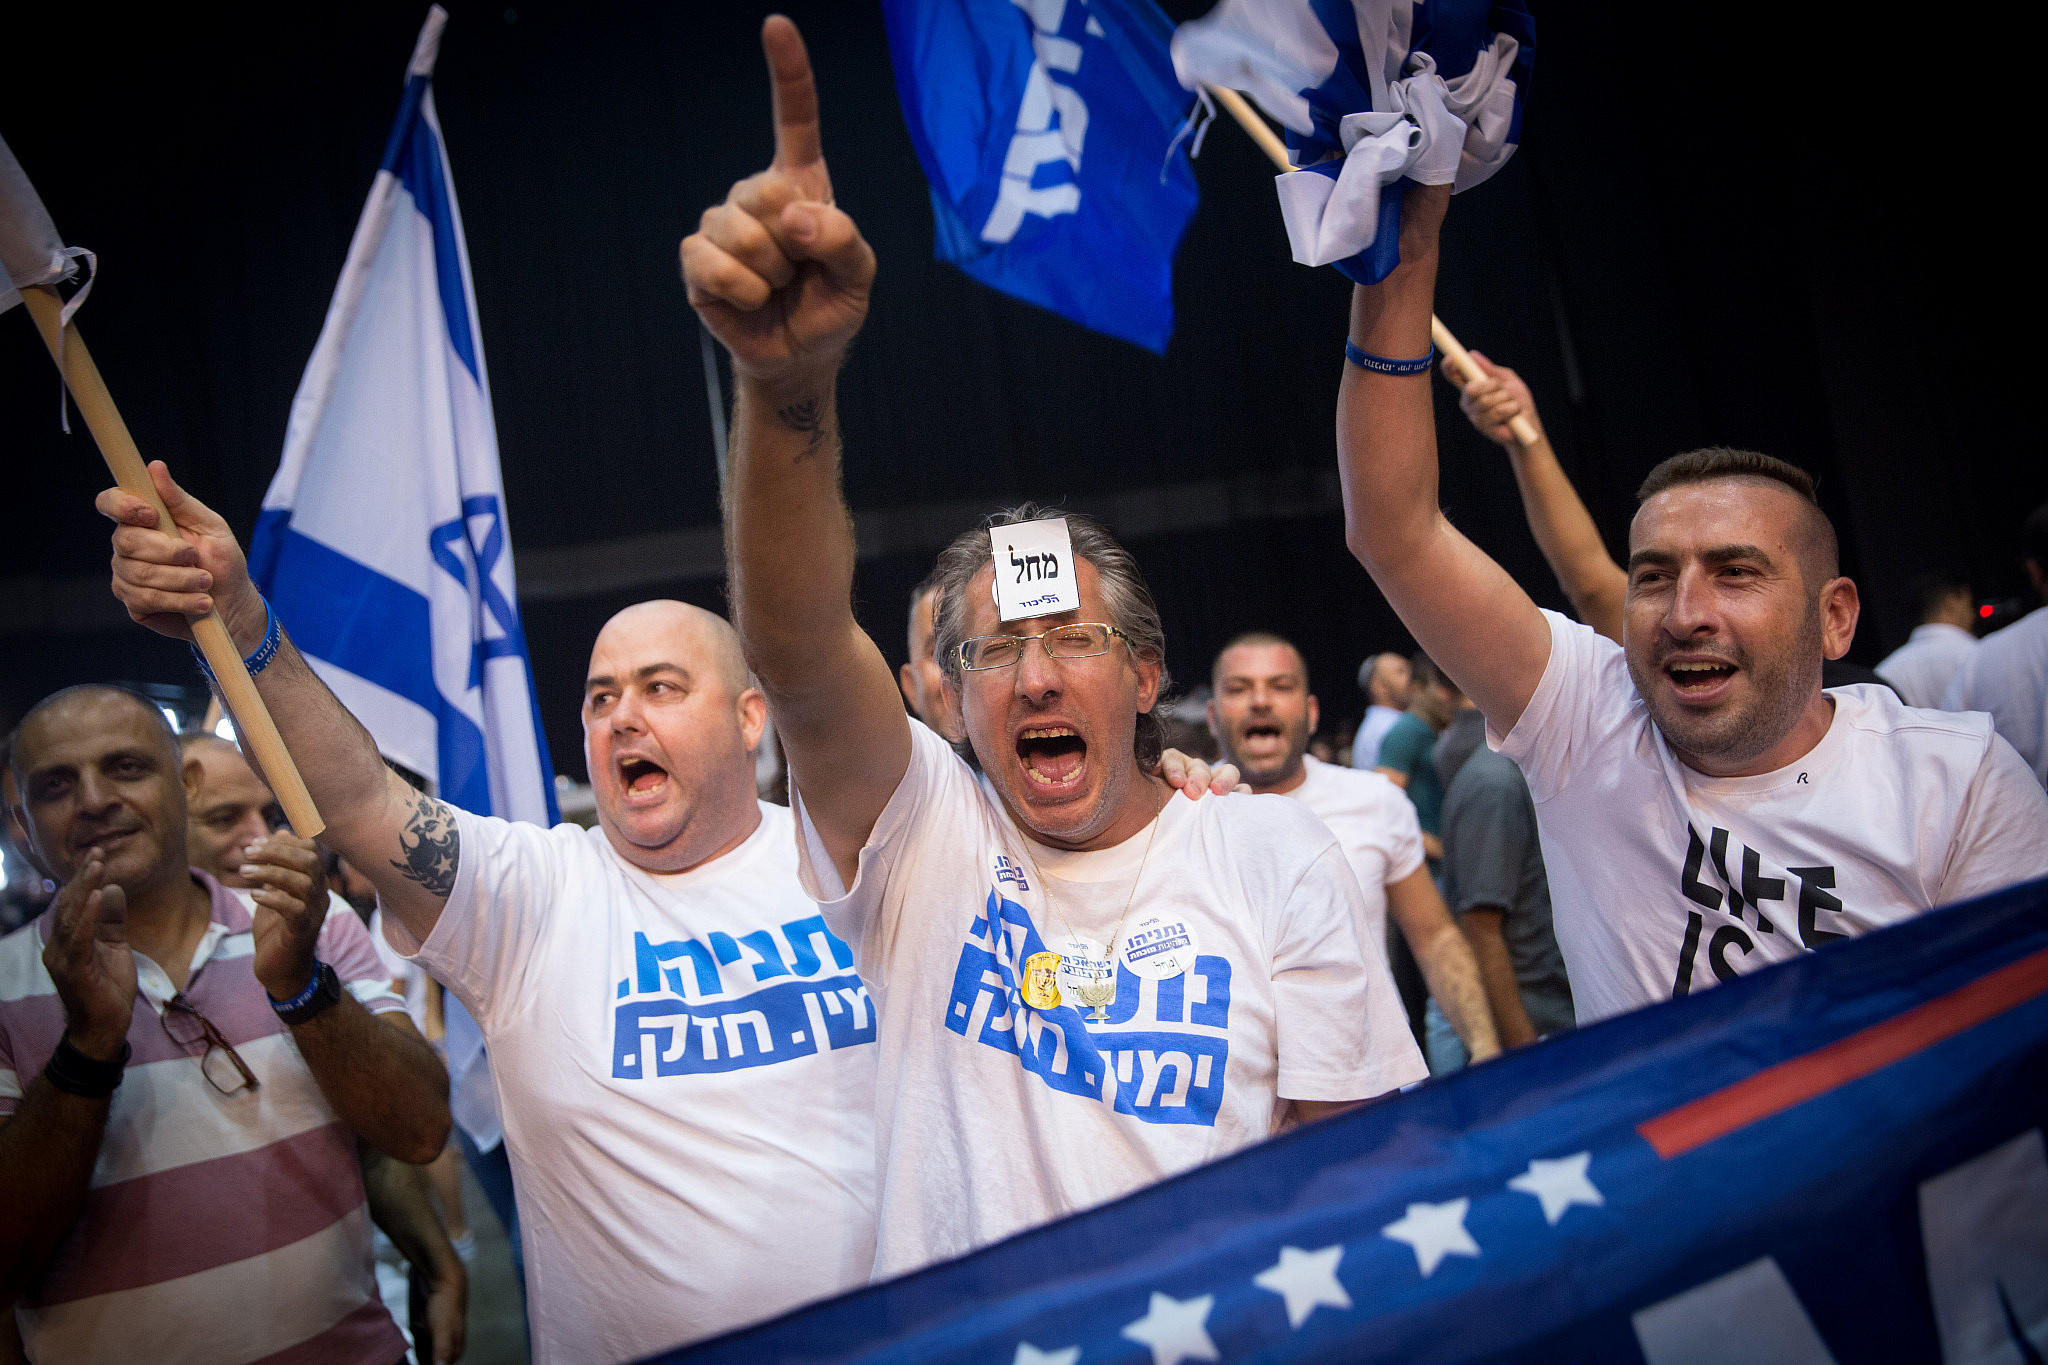 Likud supporters react as the first results in the Israeli Knesset elections are announced, September 17, 2019. (Miriam Alster/Flash90)